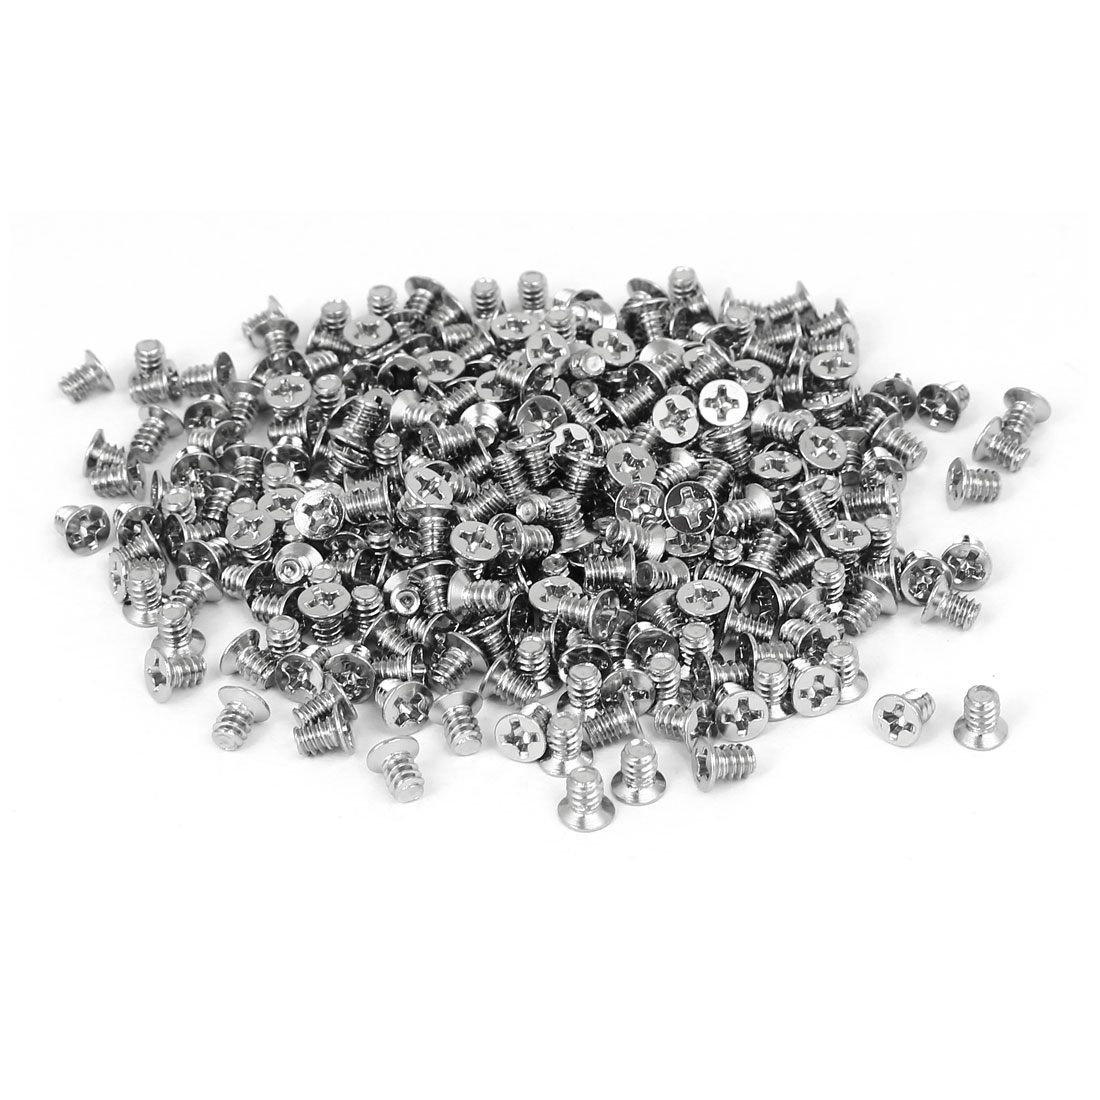 Computer PC Case 3.5-inch HDD Flat Phillips Head Hard Drive Screw 6#-32 300pcs